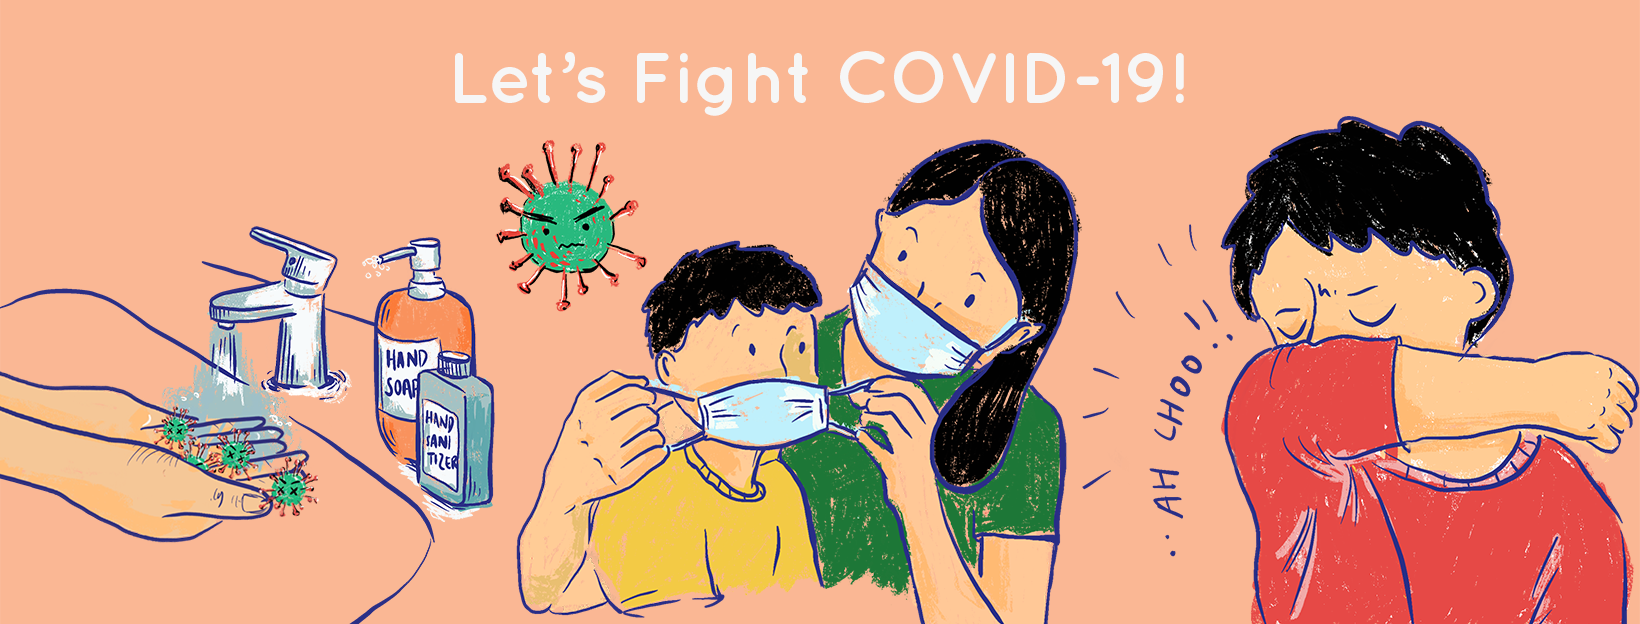 Latest Information on COVID-19 & useful online resources for caregivers